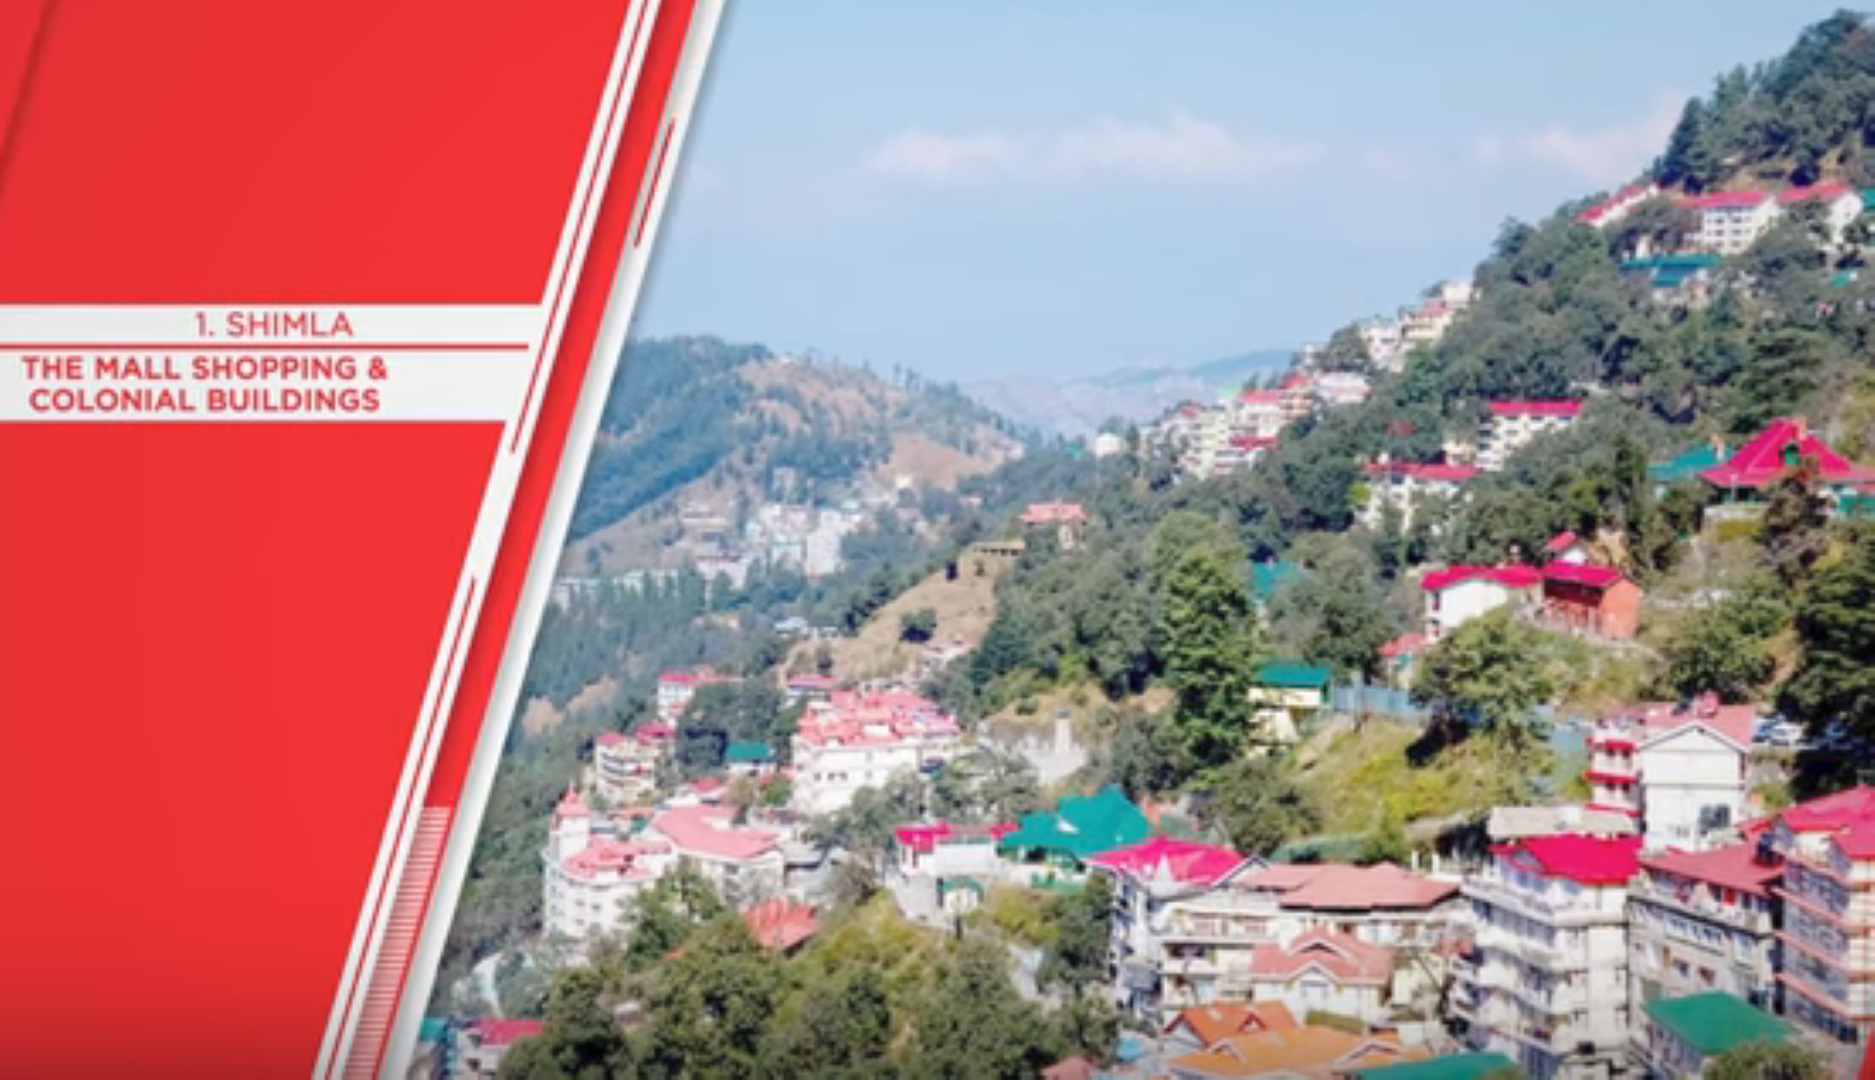 The mall shimla by tempo traveller